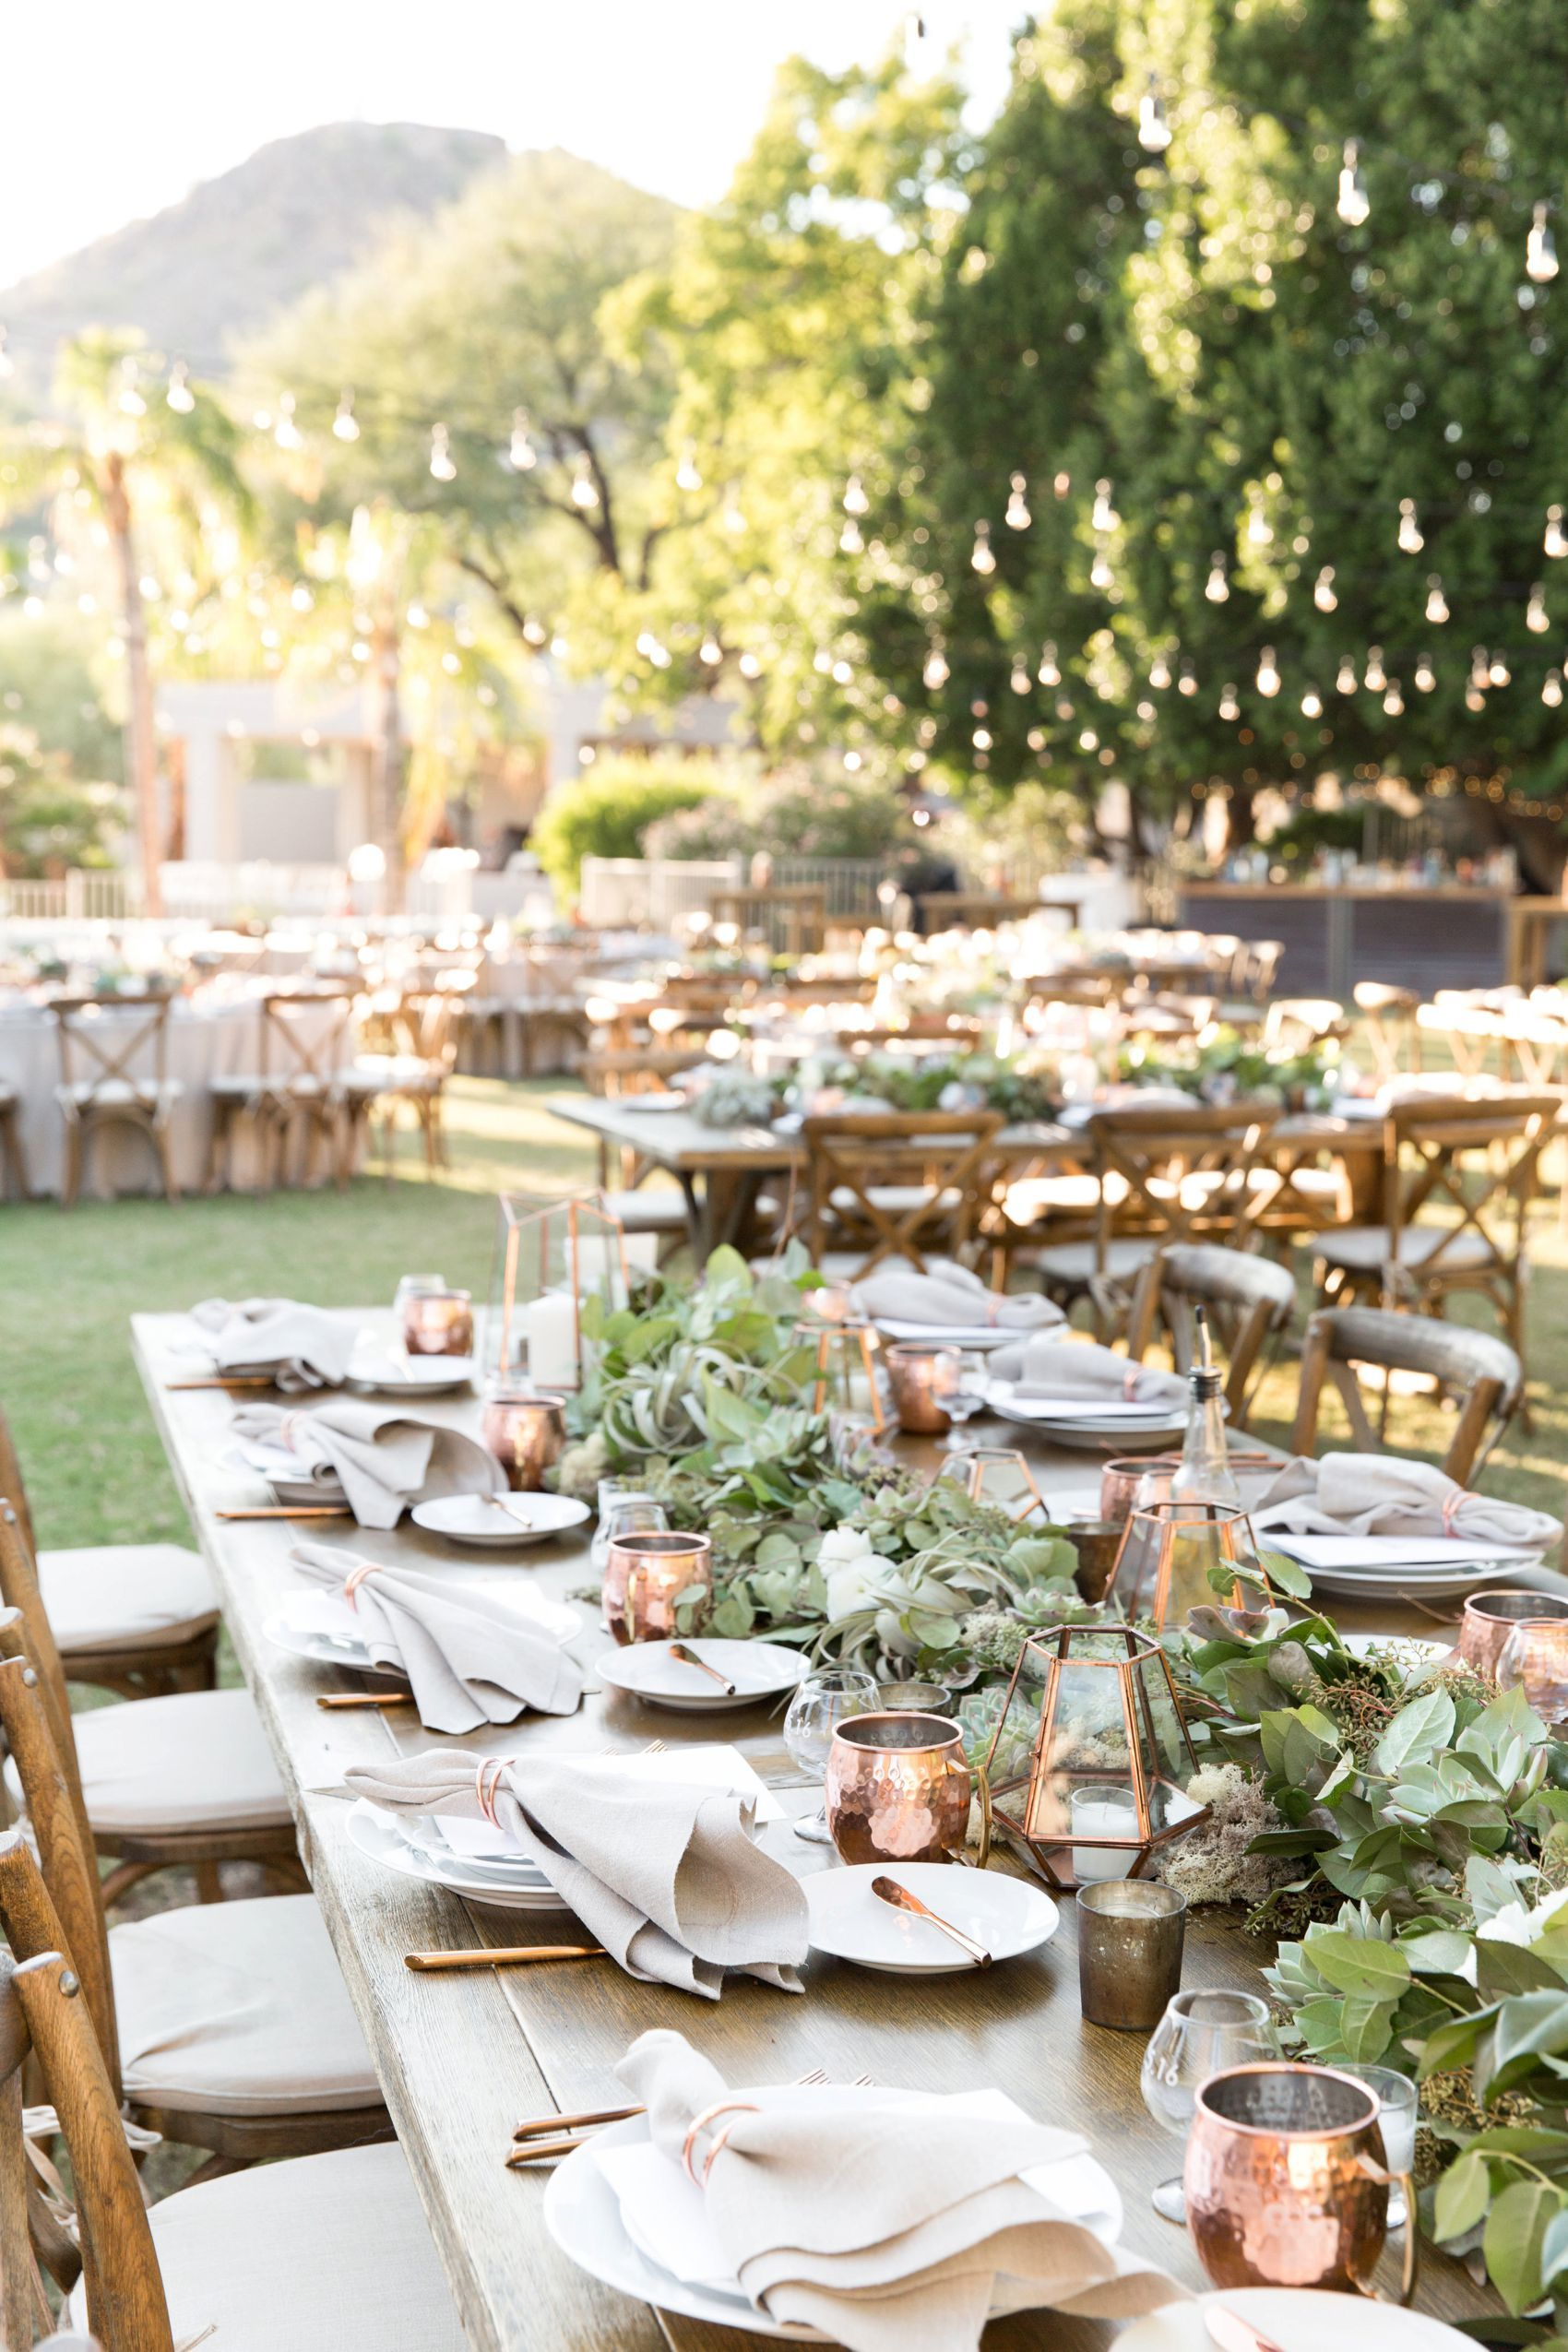 37 Table Decoration Ideas For A Summer Garden Party ...